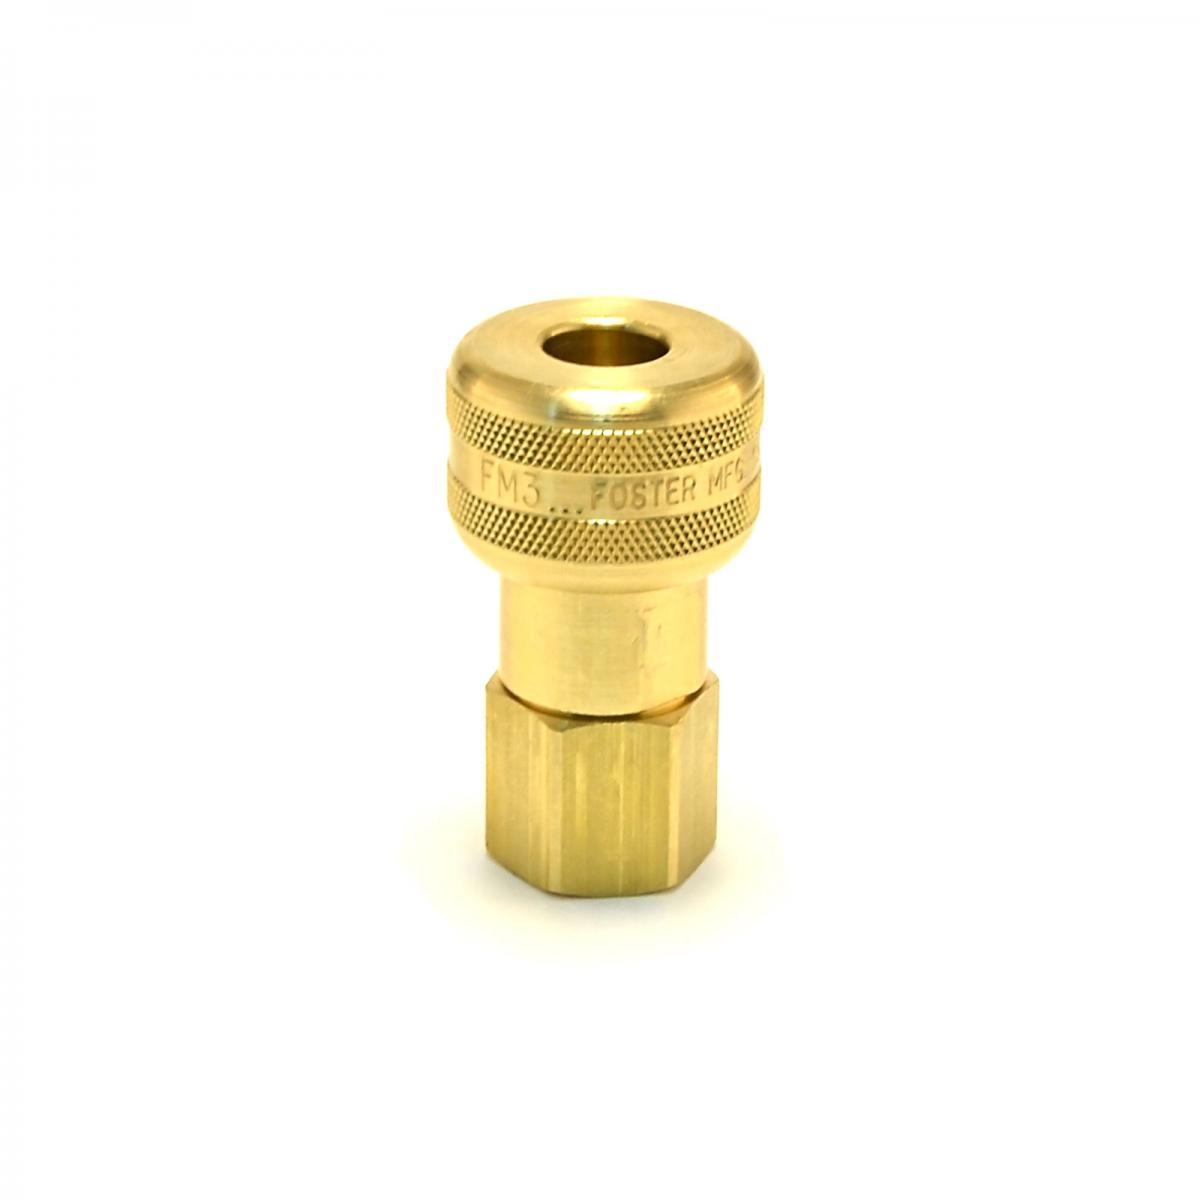 Female npt industrial quick coupler connect air